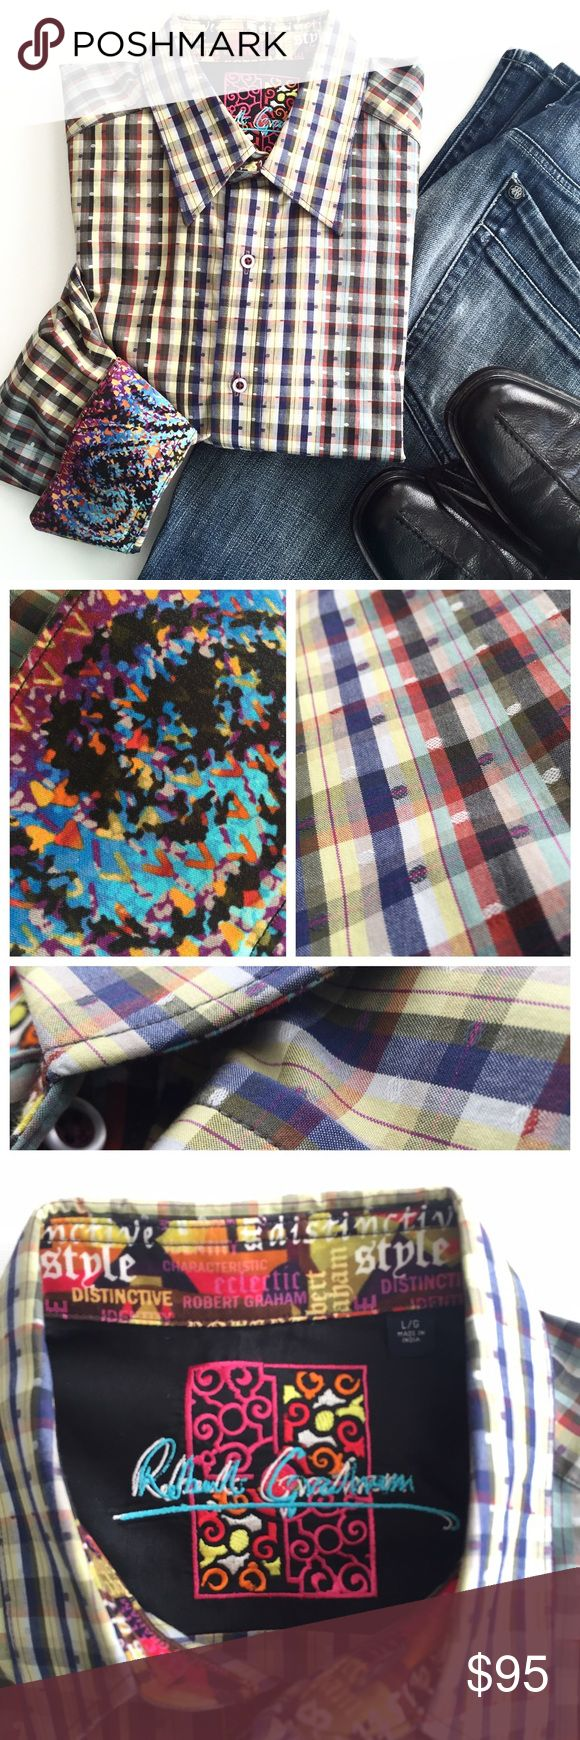 ROBERT GRAHAM Men's Long Sleeve Casual Button Down ROBERT GRAHAM Men's Long Sleeve Casual Button Down. No Defects/Excellent Used Condition ⚡️Super Fast Shipping 💯% Authentic 🚫 Trades 👍🏼 Accepting Offers Robert Graham Shirts Casual Button Down Shirts